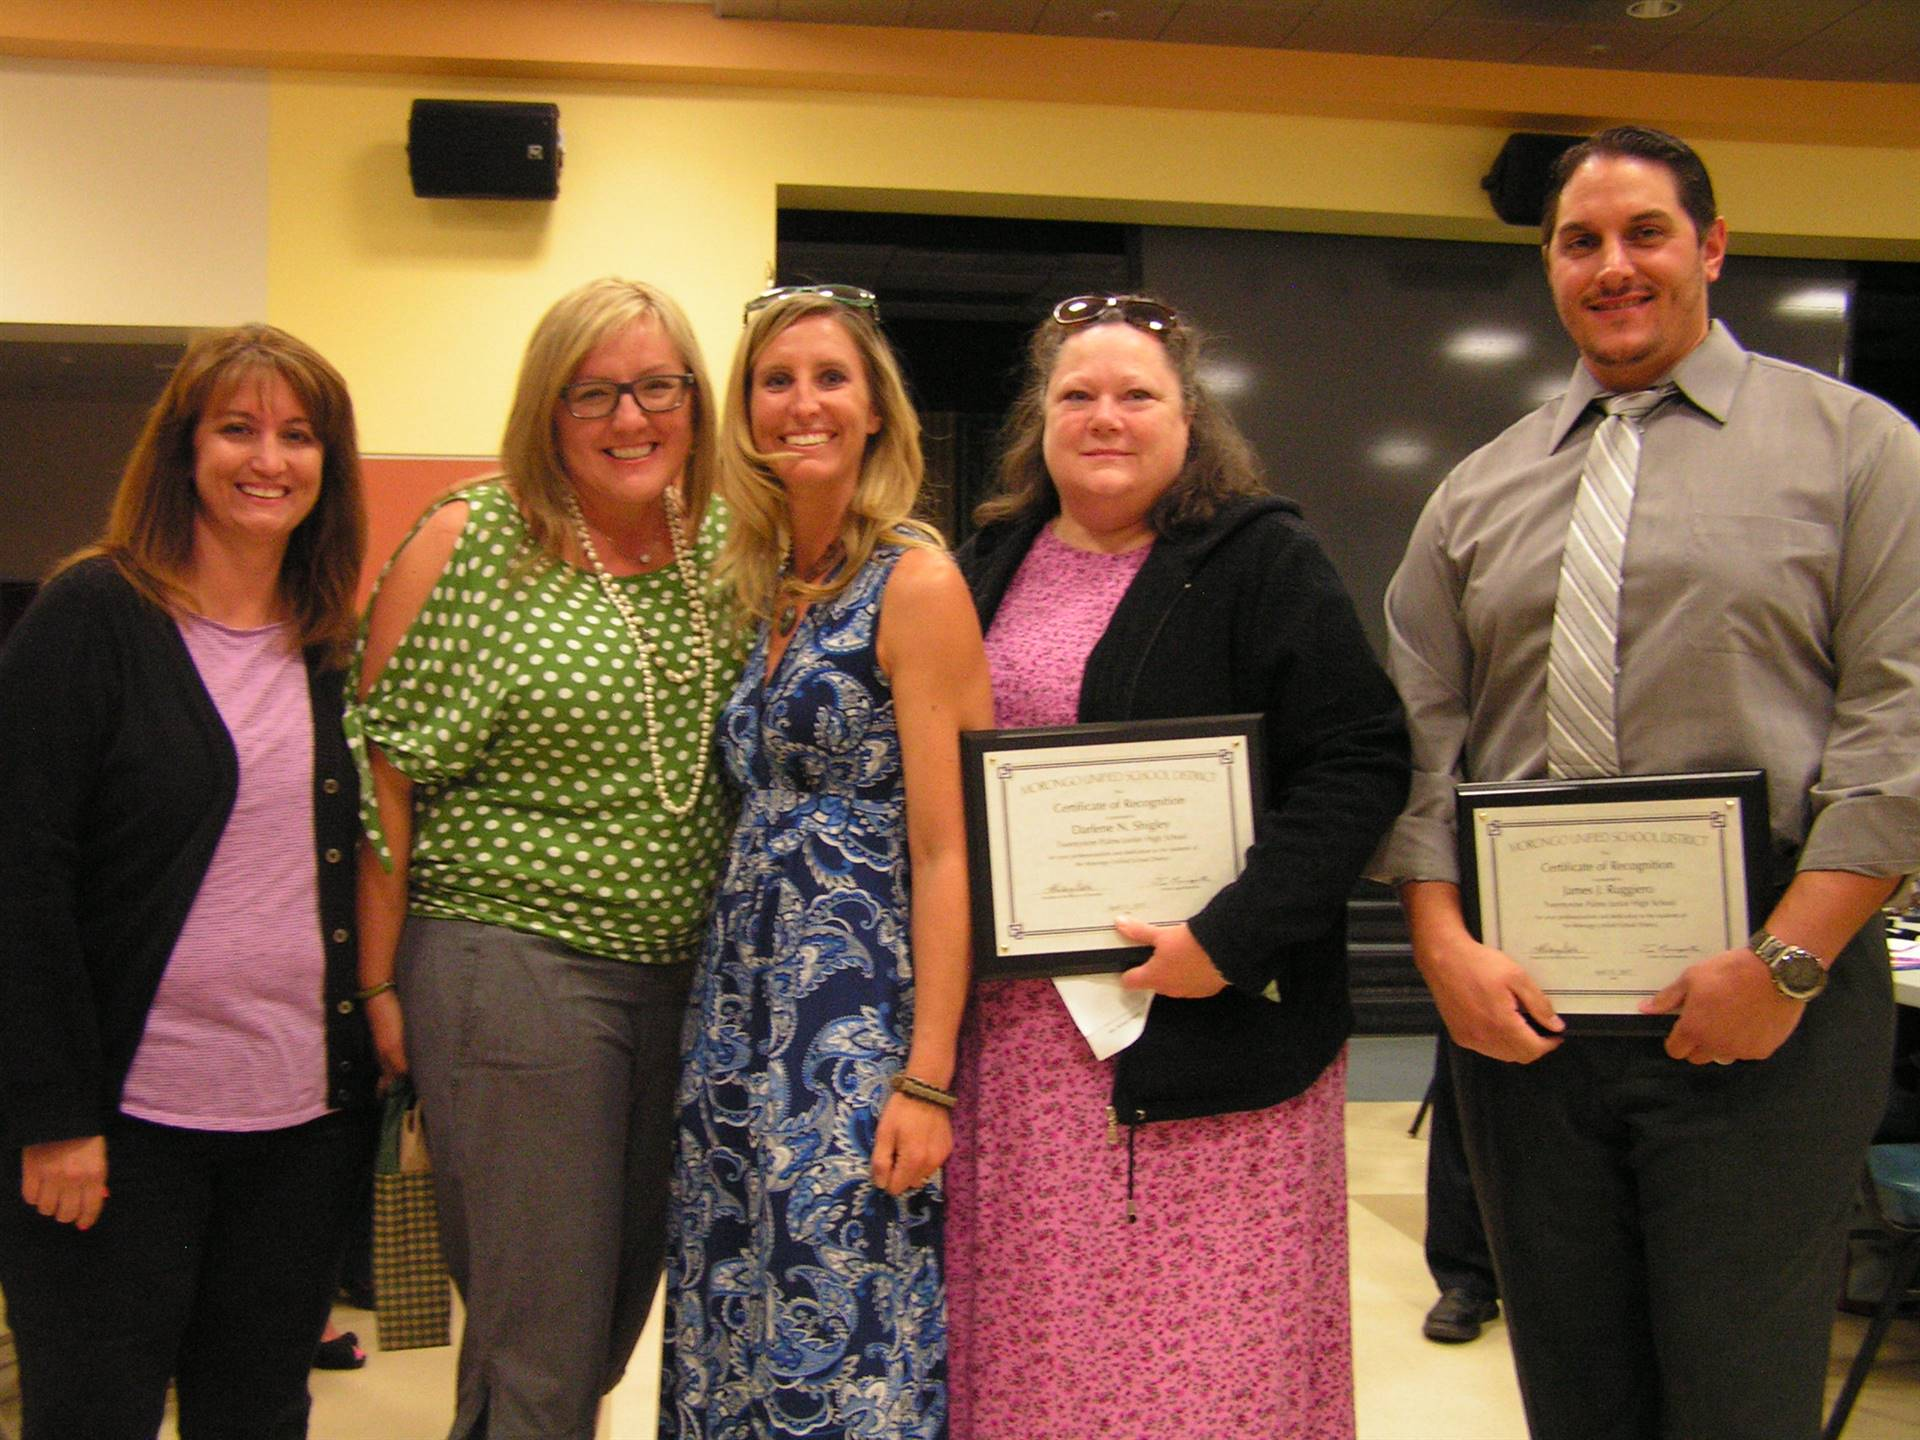 29 PALMS JR HIGH: TERRIE PANZARELLA, GERRY KENNEY, STACY SMALLING, DARLENE SHIGLEY, JAMES RUGGIERO